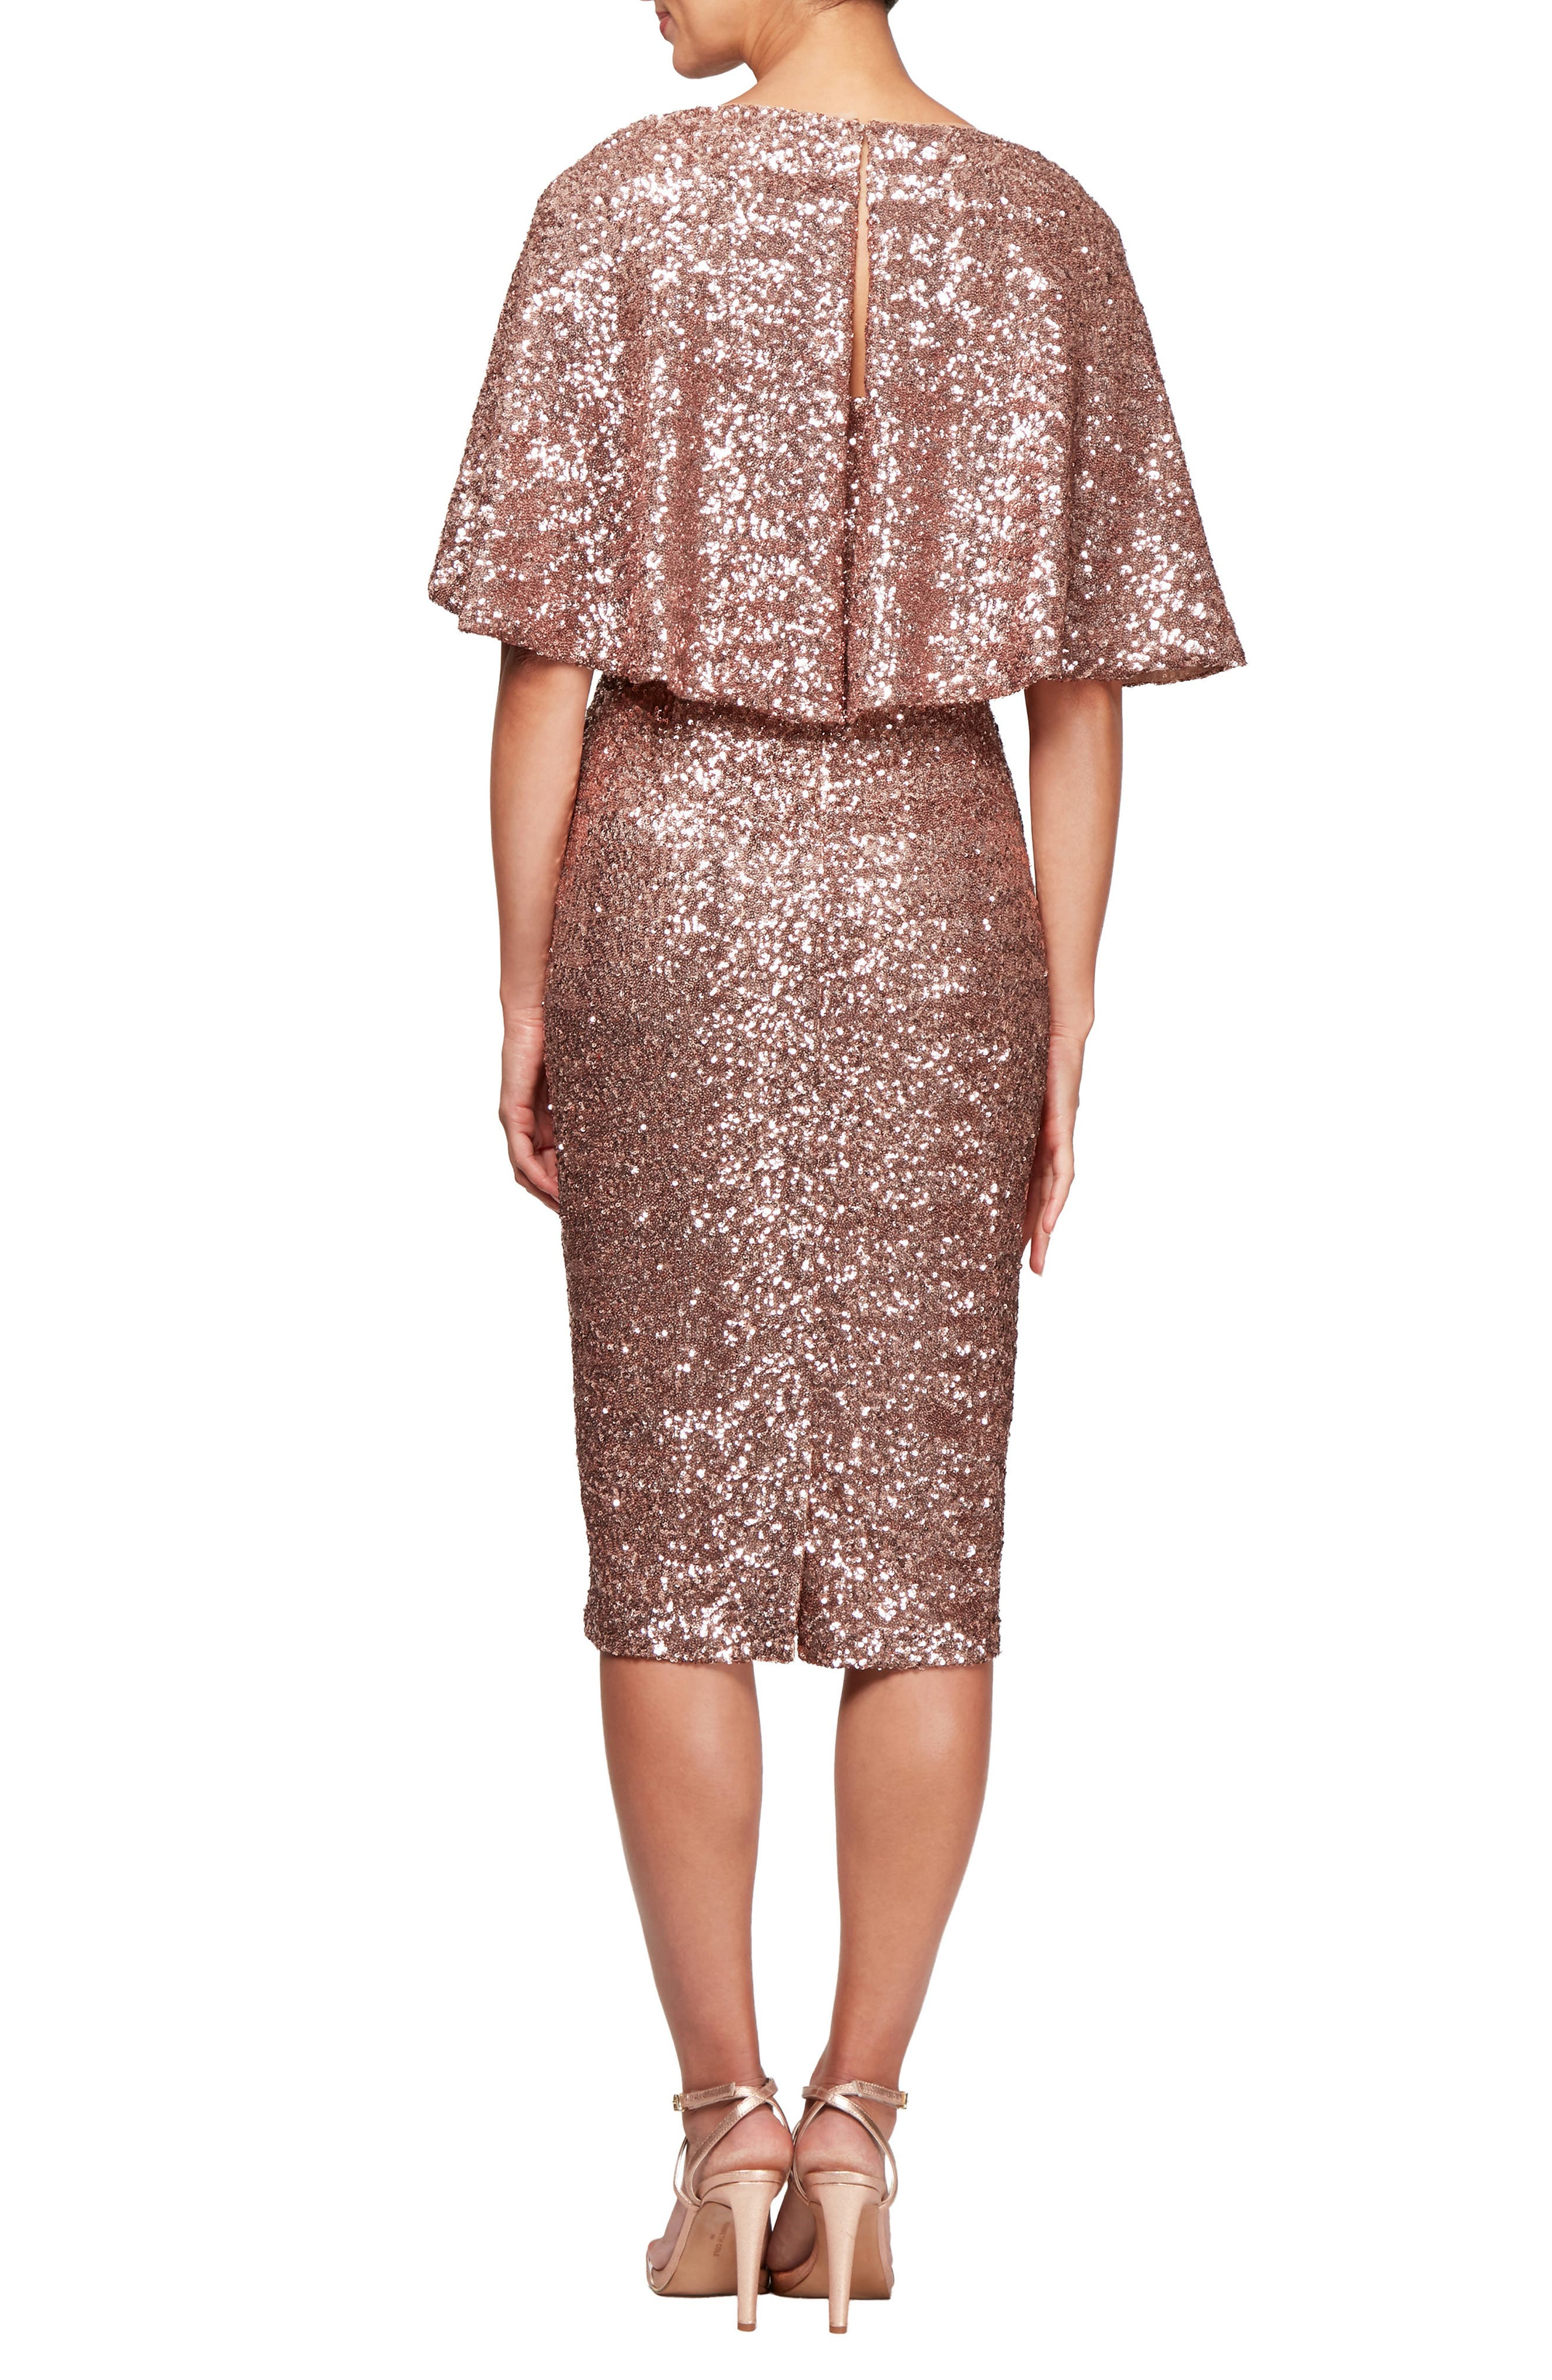 Capelet Sleeve Sequin Cocktail Sheath,                             Alternate thumbnail 2, color,                             ROSE GOLD